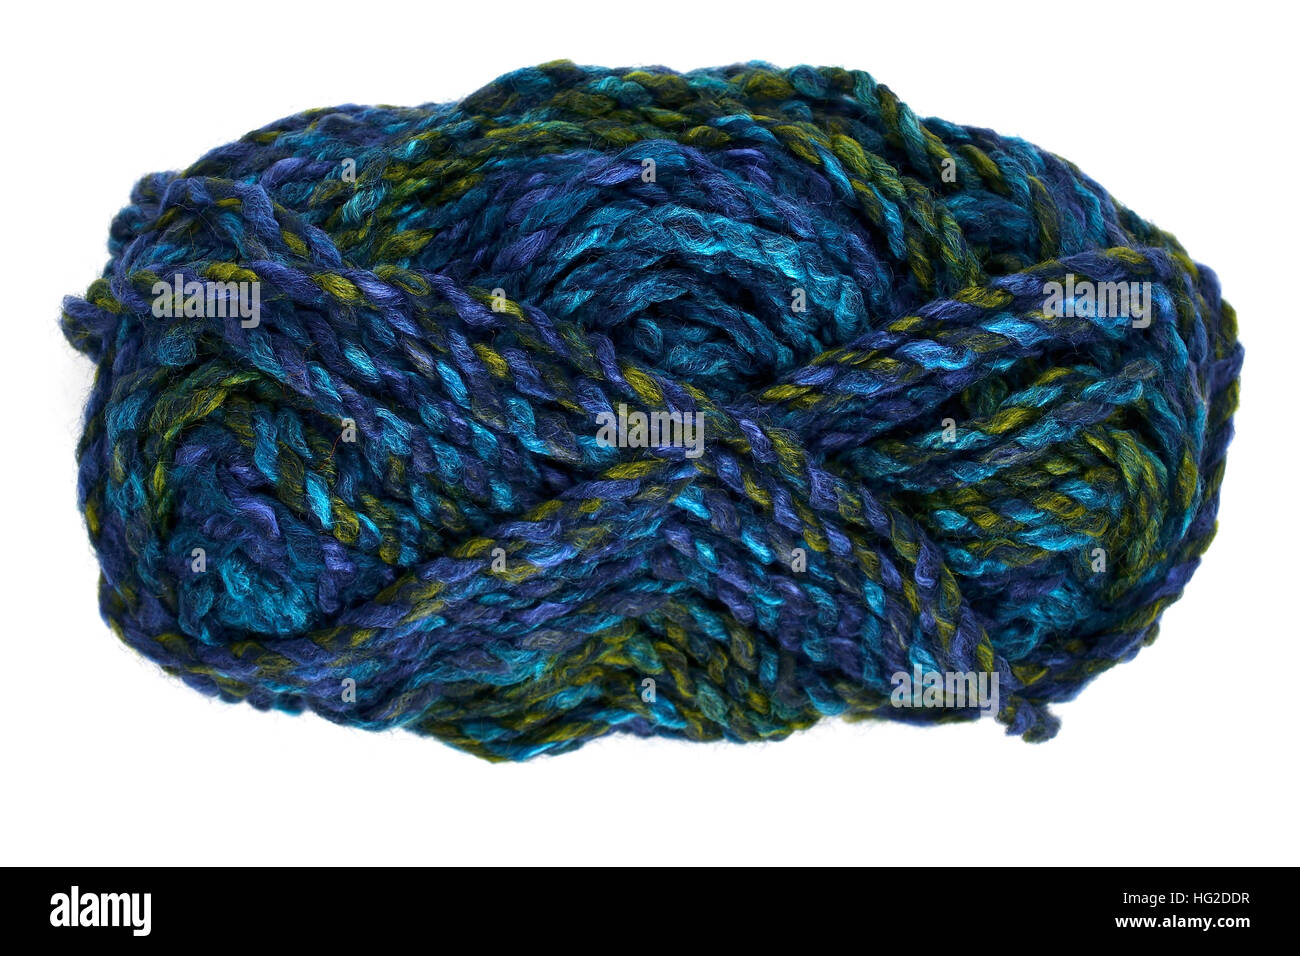 skein of wool on a white background - Stock Image